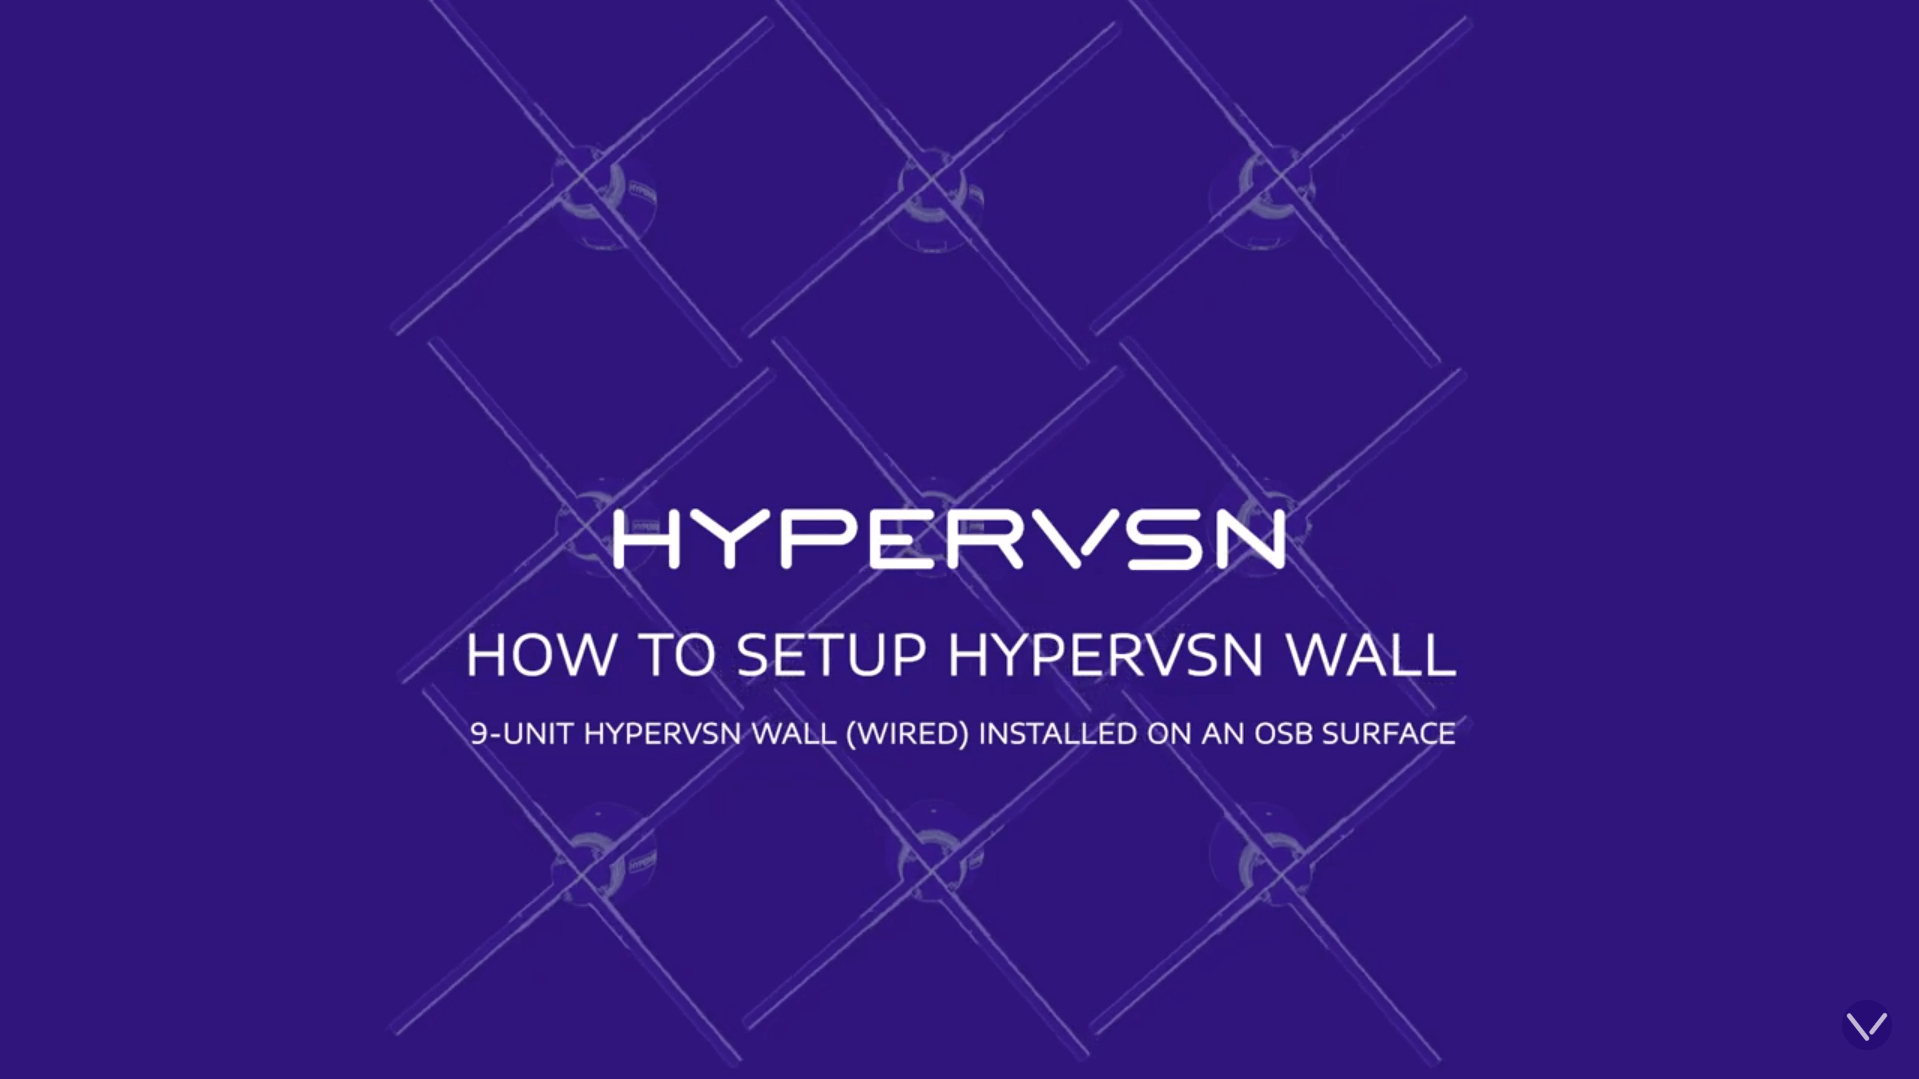 How to Setup HYPERVSN Wall